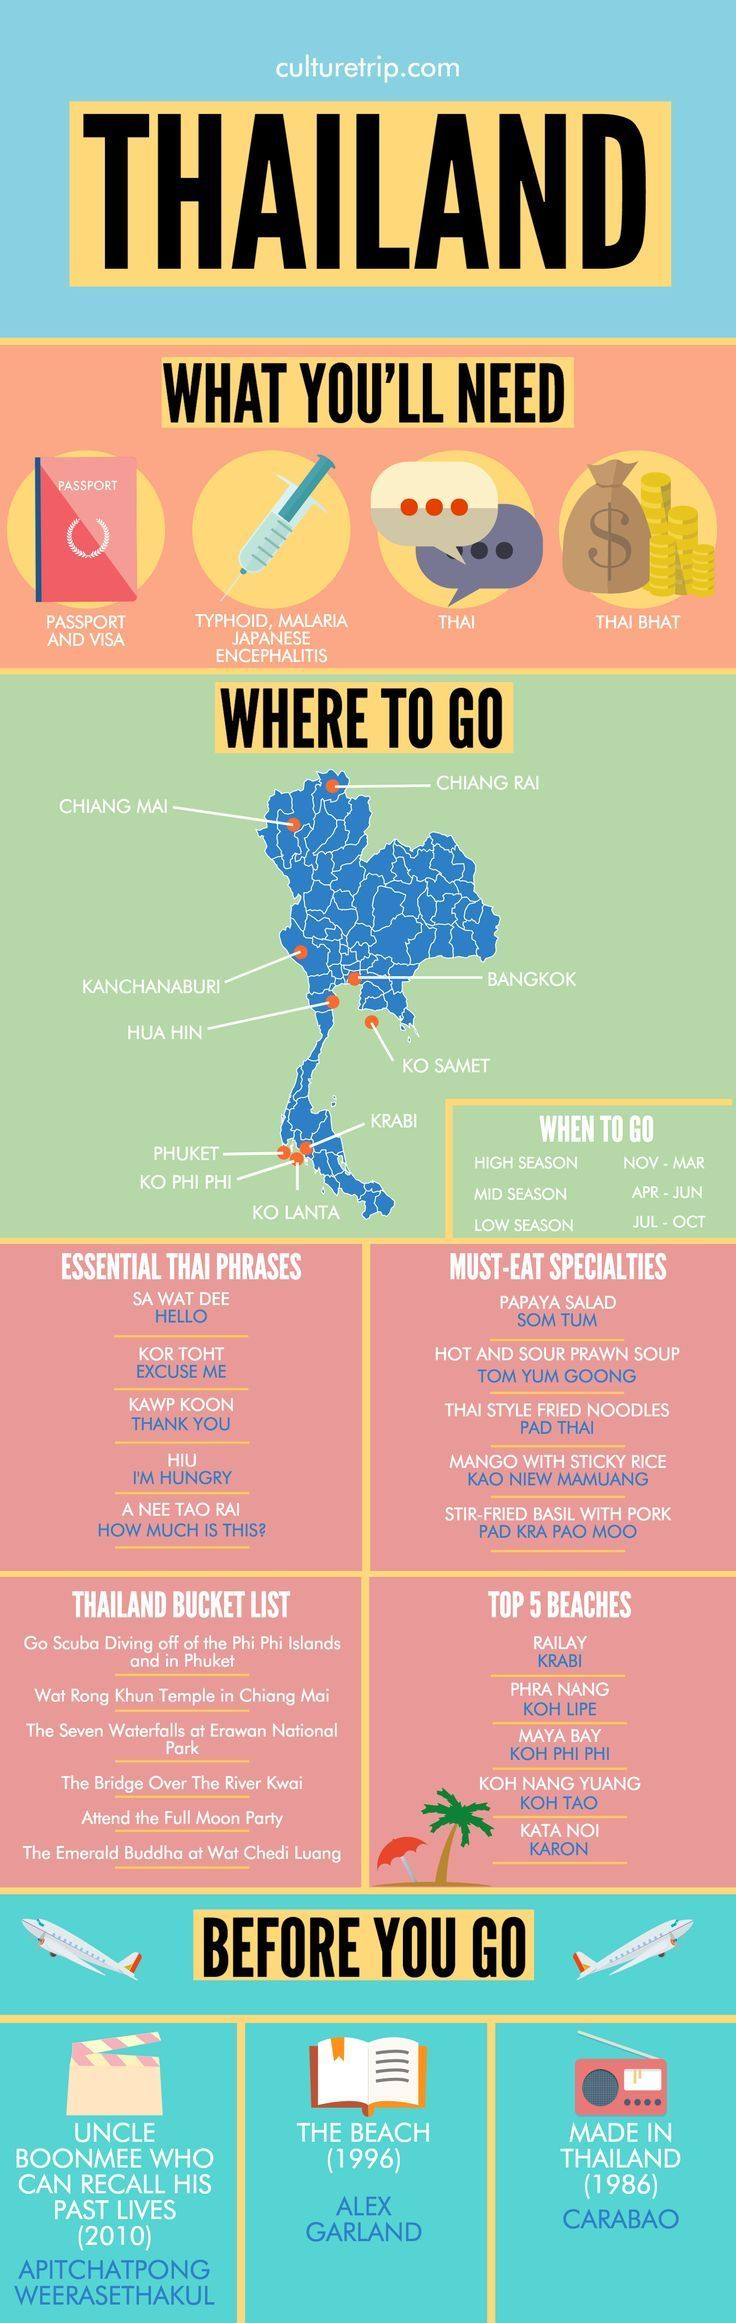 The Best Travel, Food and Culture Guides for Thailand - Local News & Top Things to Do